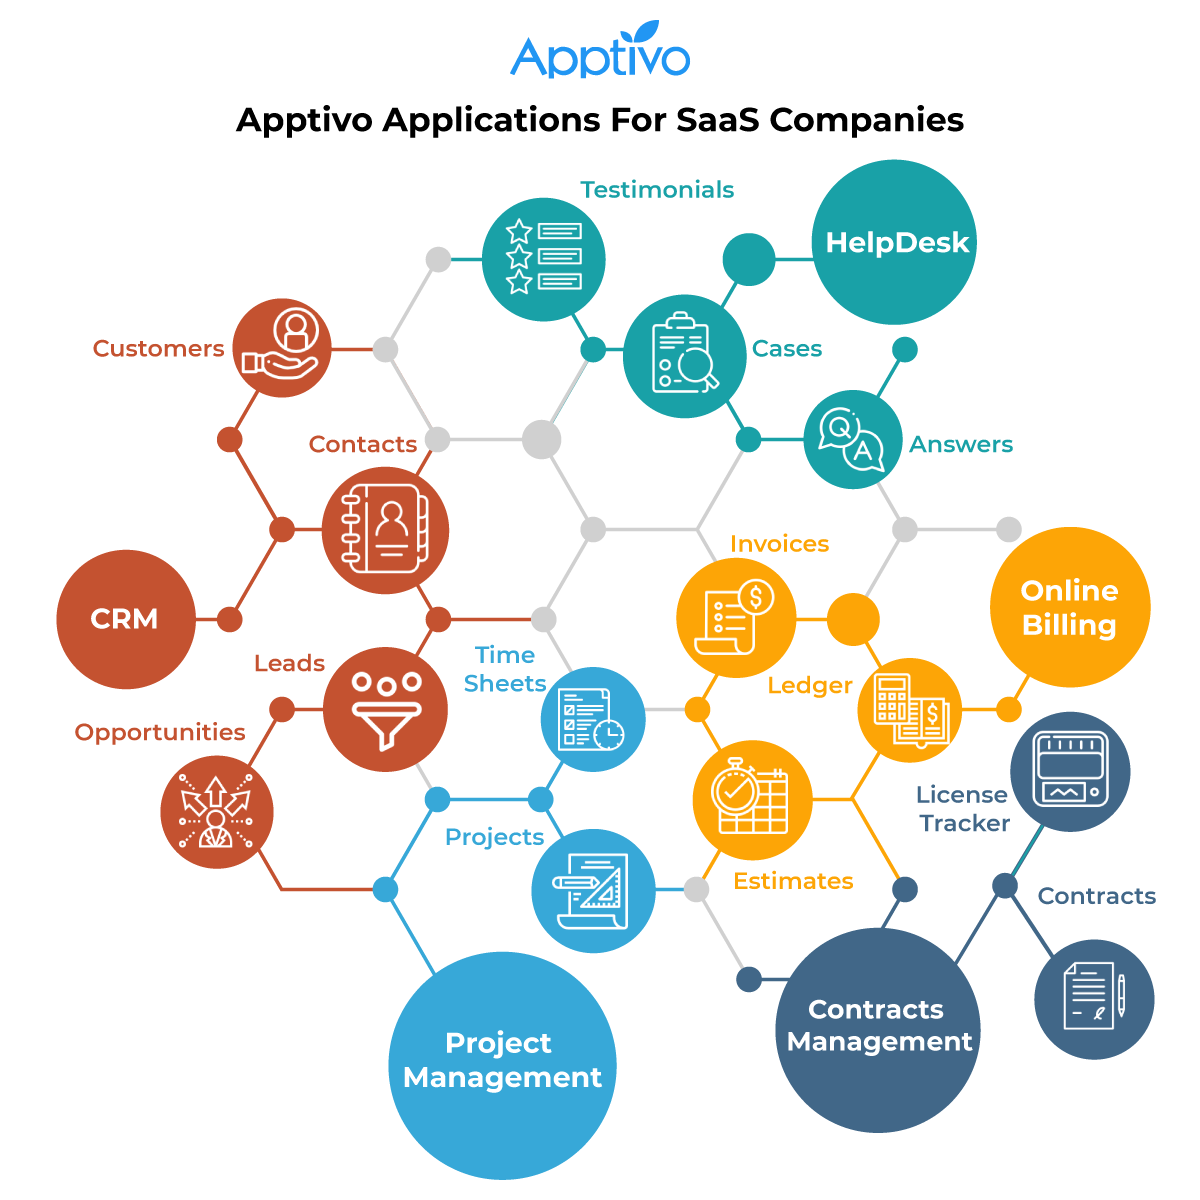 Apptivo solutions for SaaS business plan